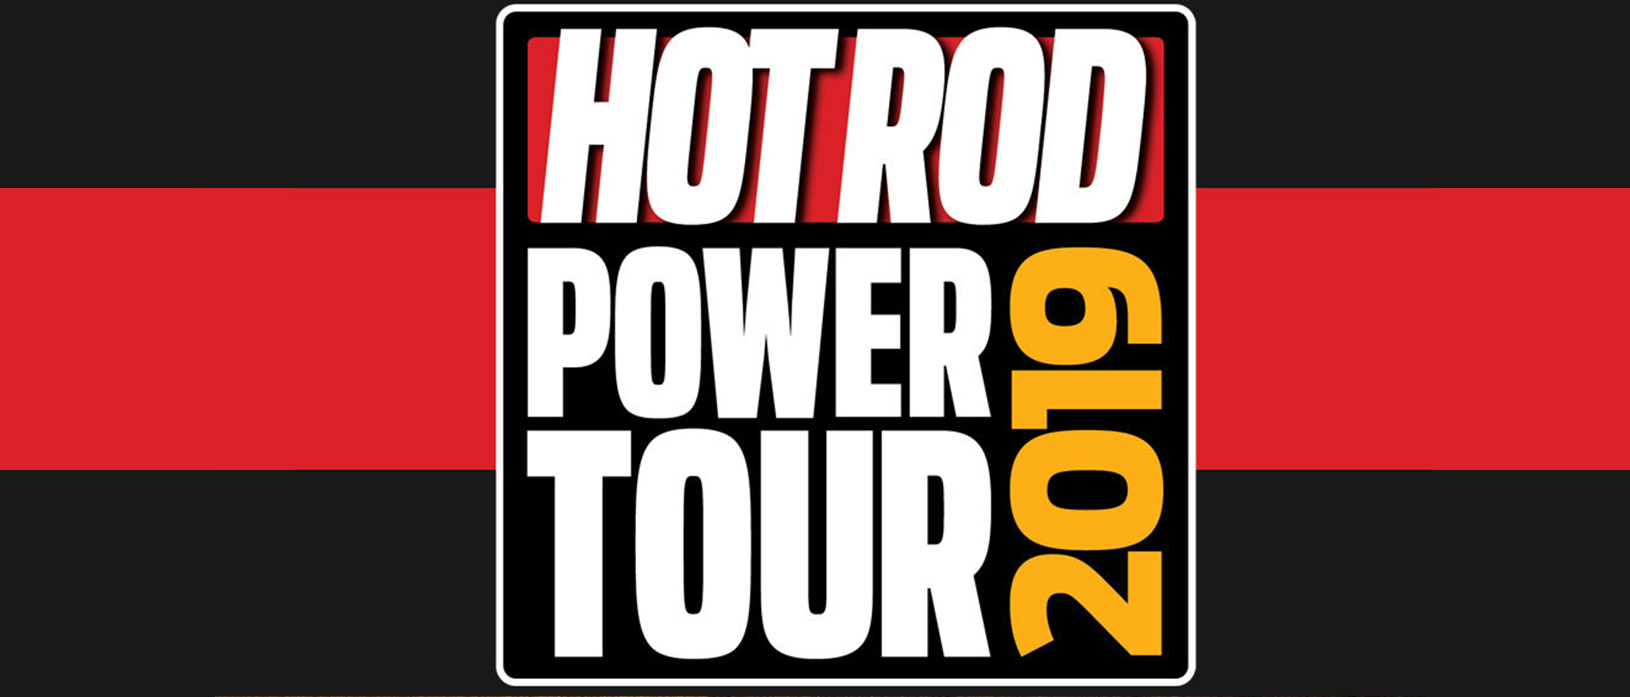 hot rod power tour 2019 black and red banner